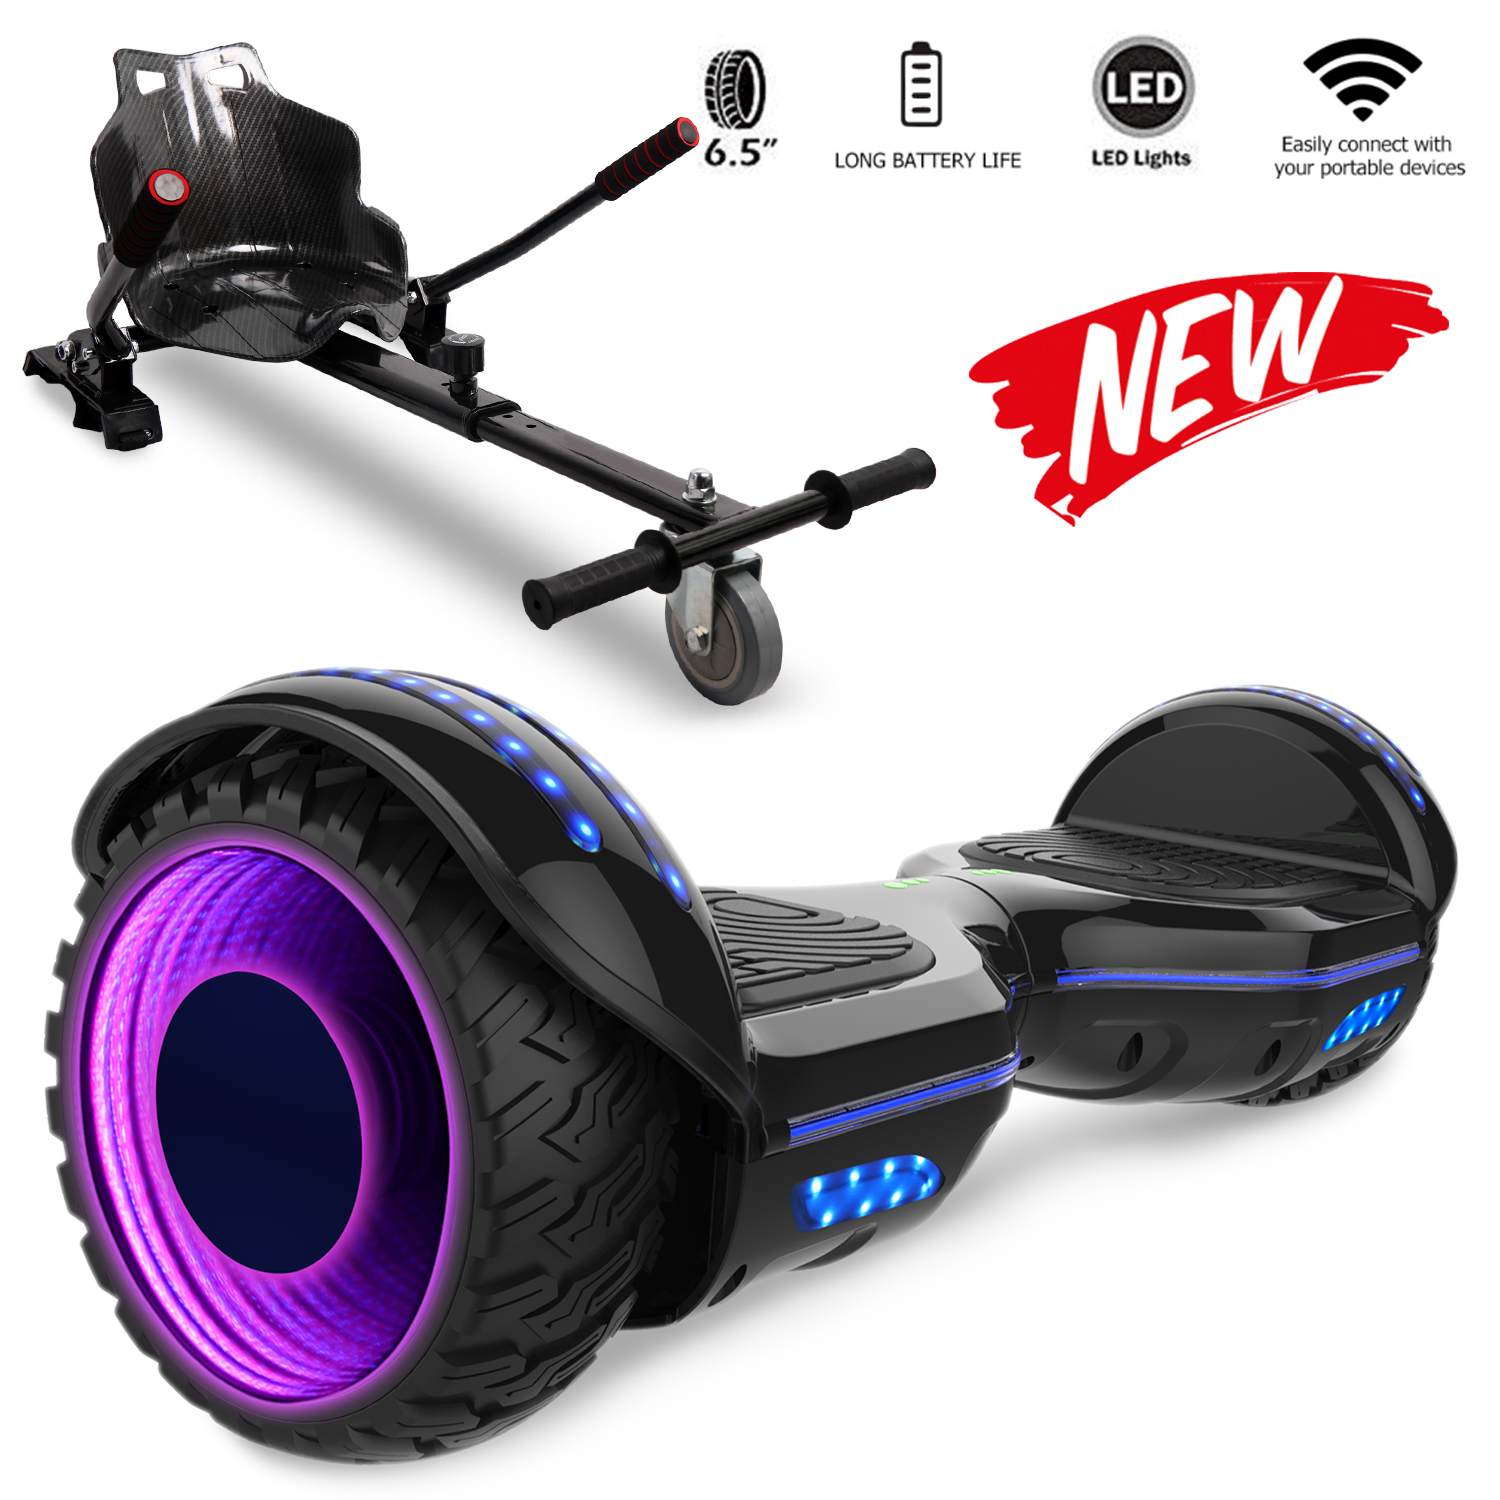 Self Balancing Scooter Hoverboard 6 5 With Hoverkart Adjustable Led Wheel And Built In Bluetooth Sale Price Reviews Gearbest